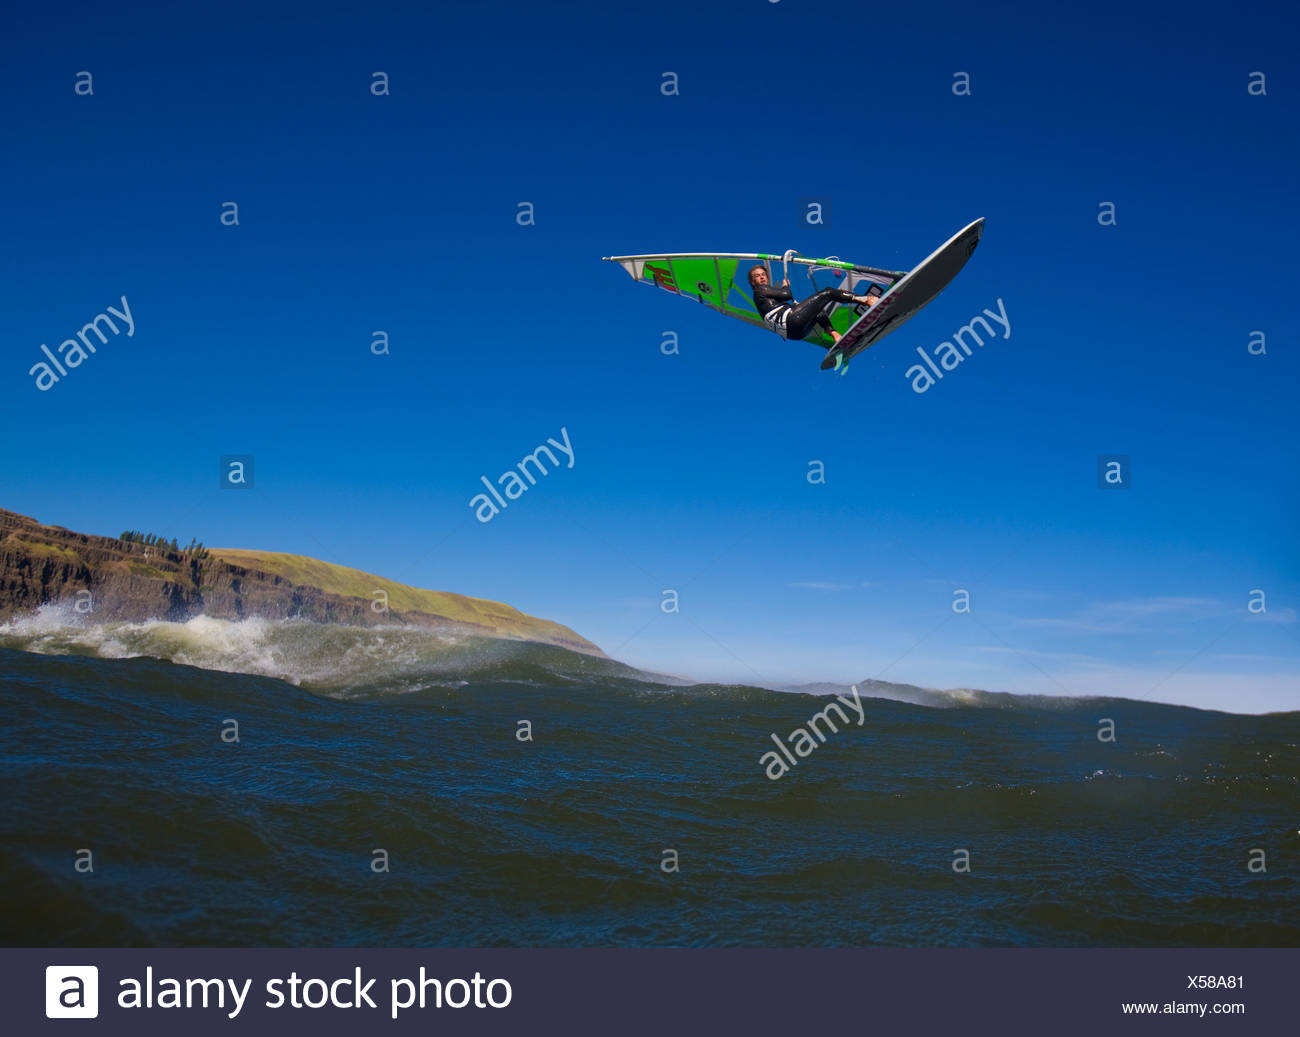 Windsurfer airs it out at The Wall. - Stock Image